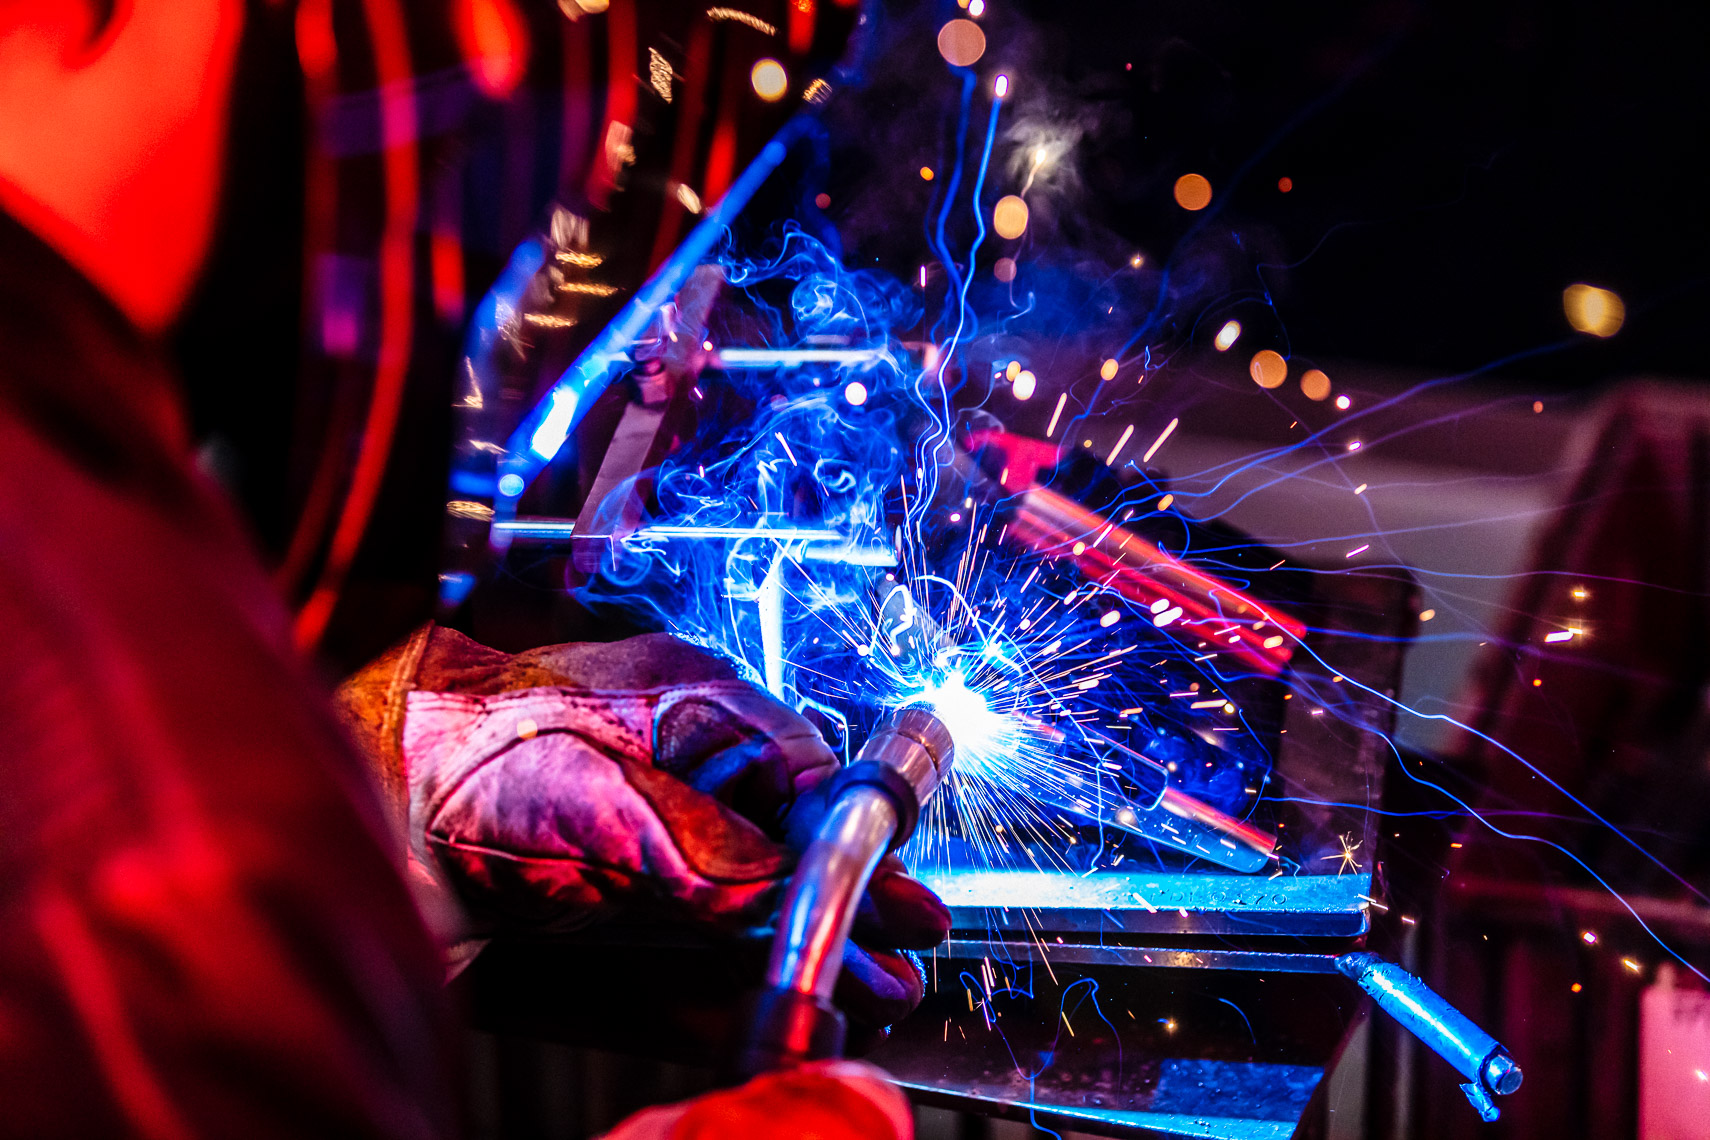 Industrial Welding Portrait